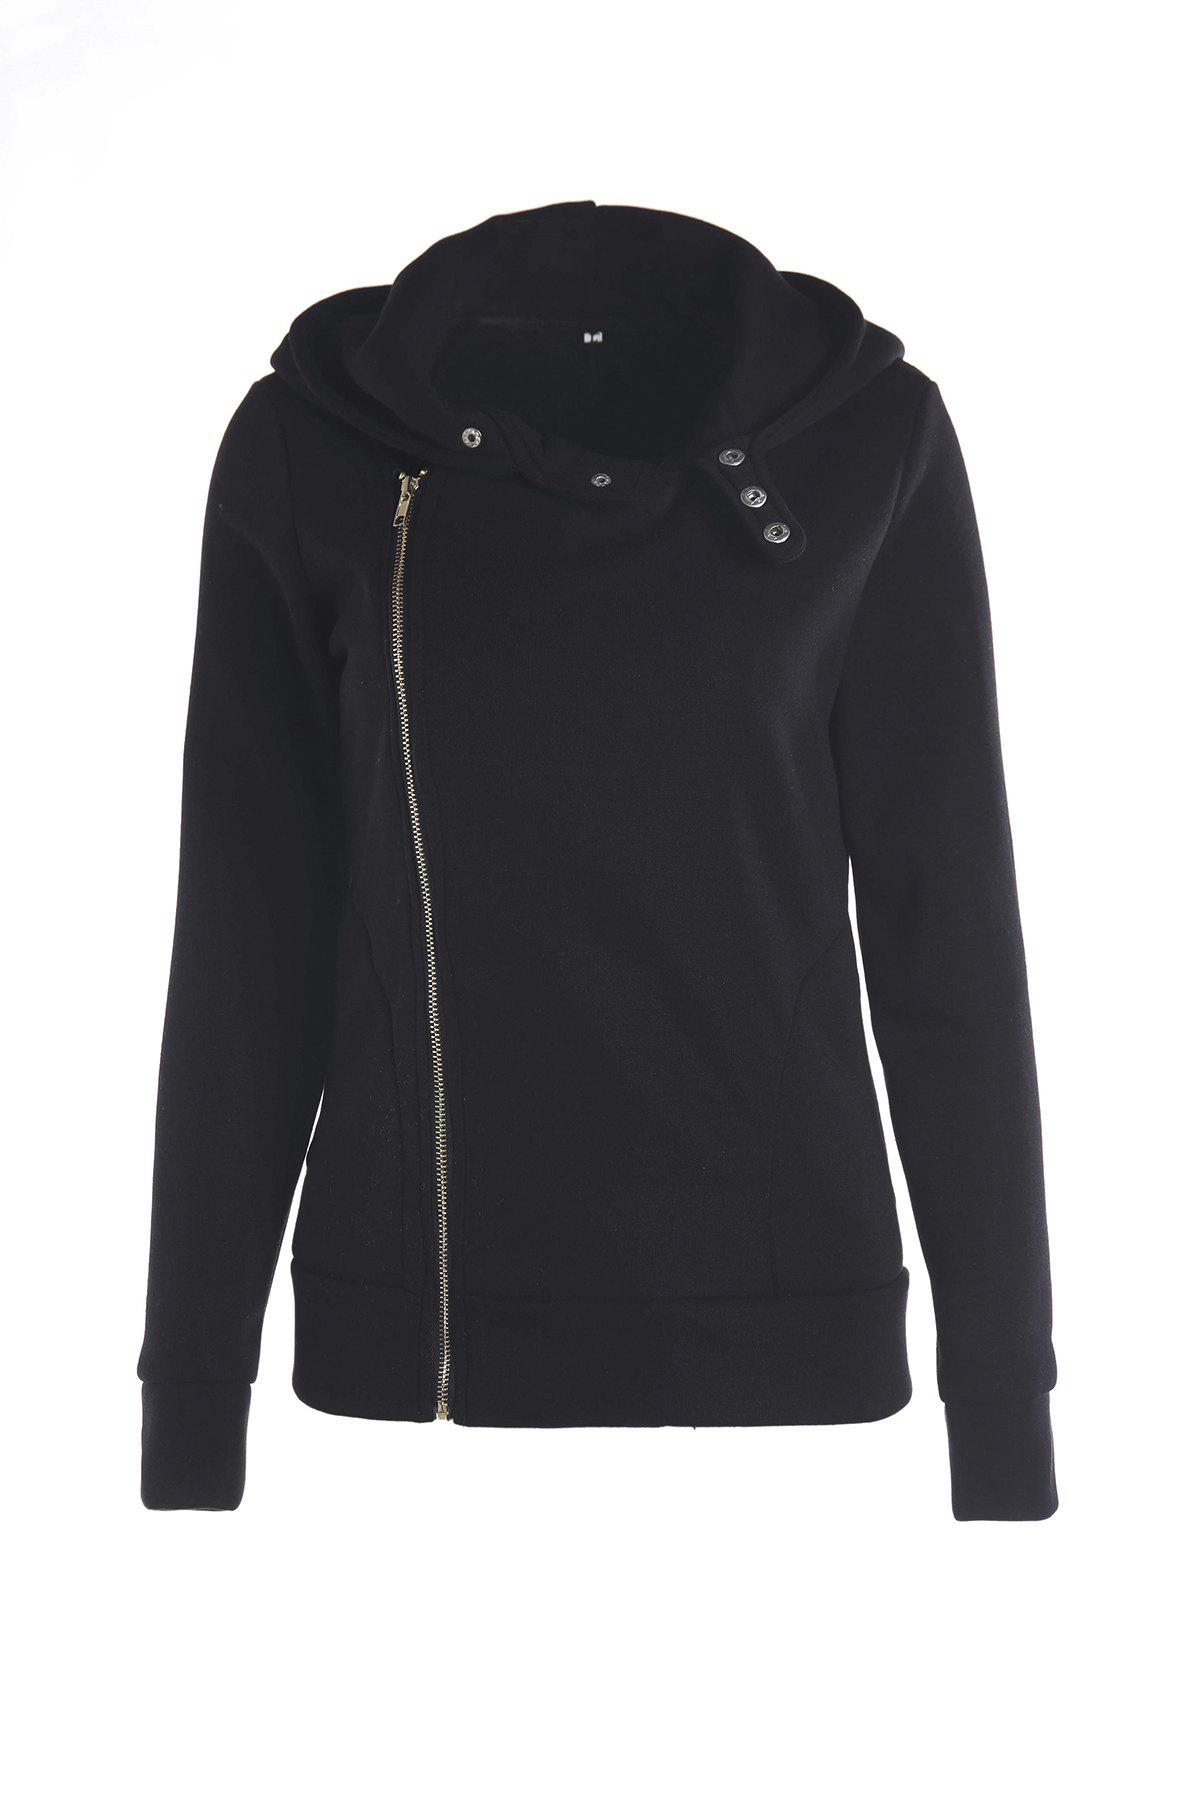 Stylish Solid Color Long Sleeves Hoodie For WomenWOMEN<br><br>Size: 2XL; Color: BLACK; Material: Polyester; Clothing Length: Regular; Sleeve Length: Full; Style: Fashion; Pattern Style: Solid; Weight: 0.570kg; Package Contents: 1 x Hoodie;